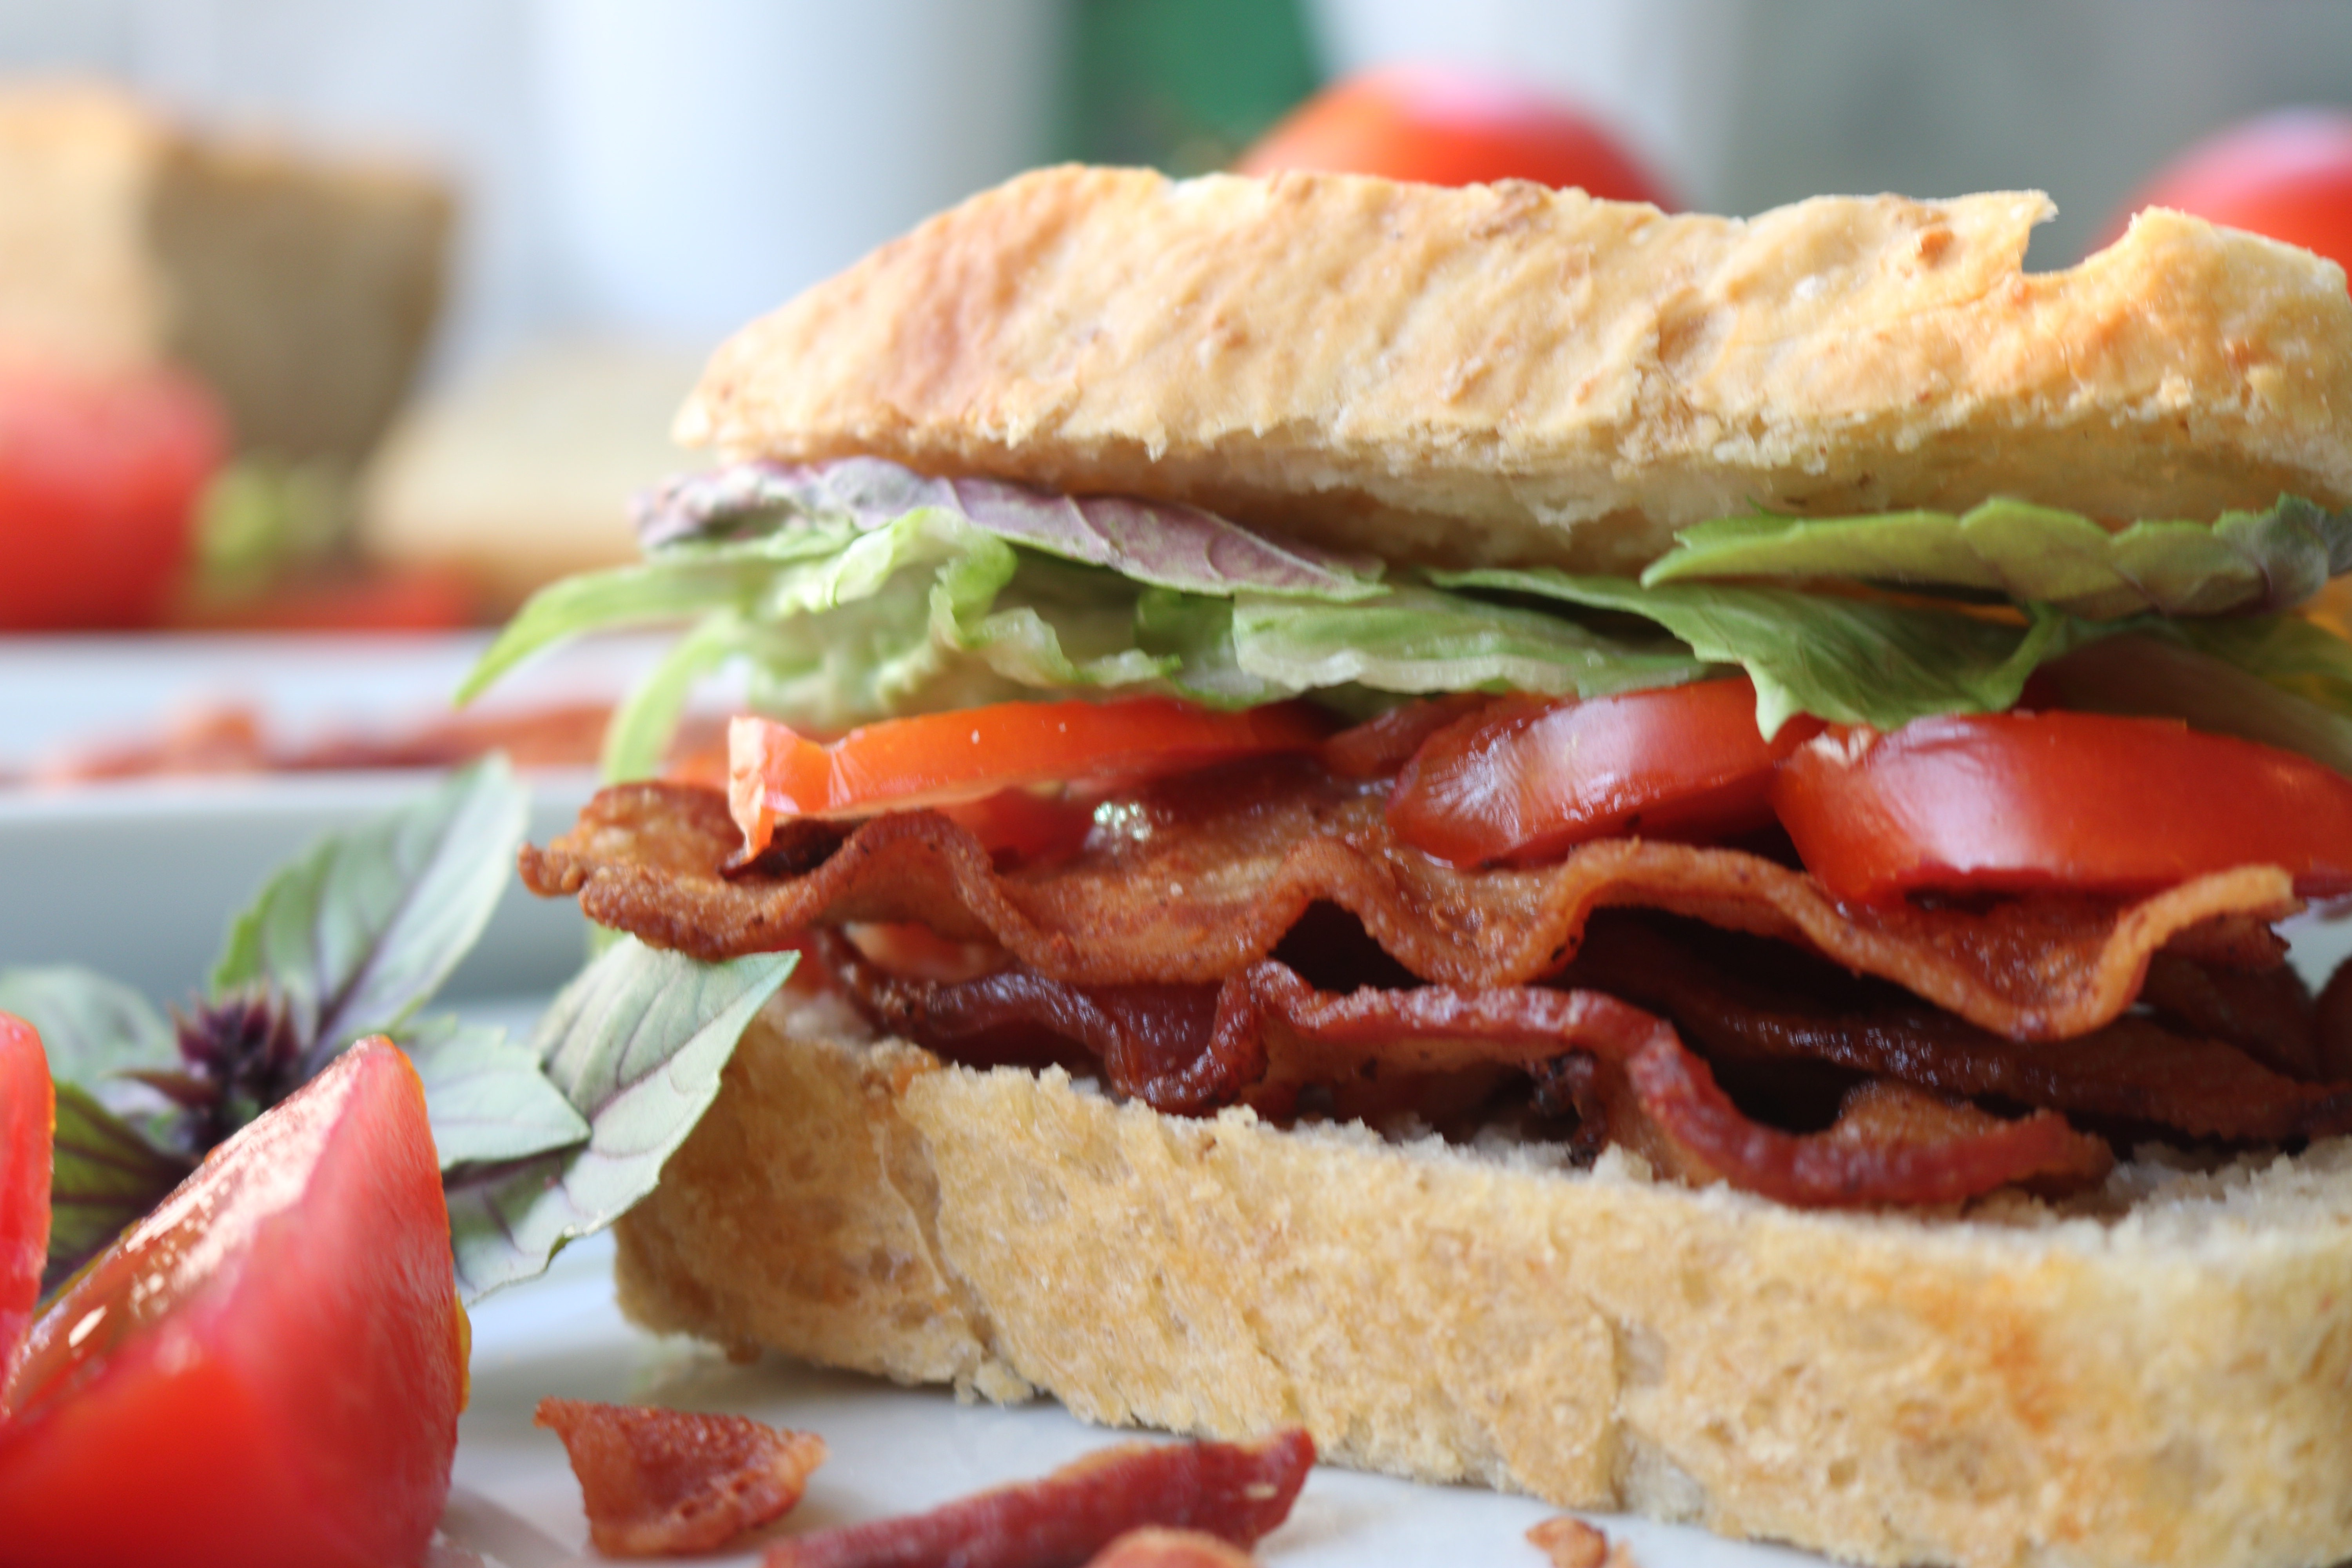 BLT with garden fresh tomatoes and homemade bread